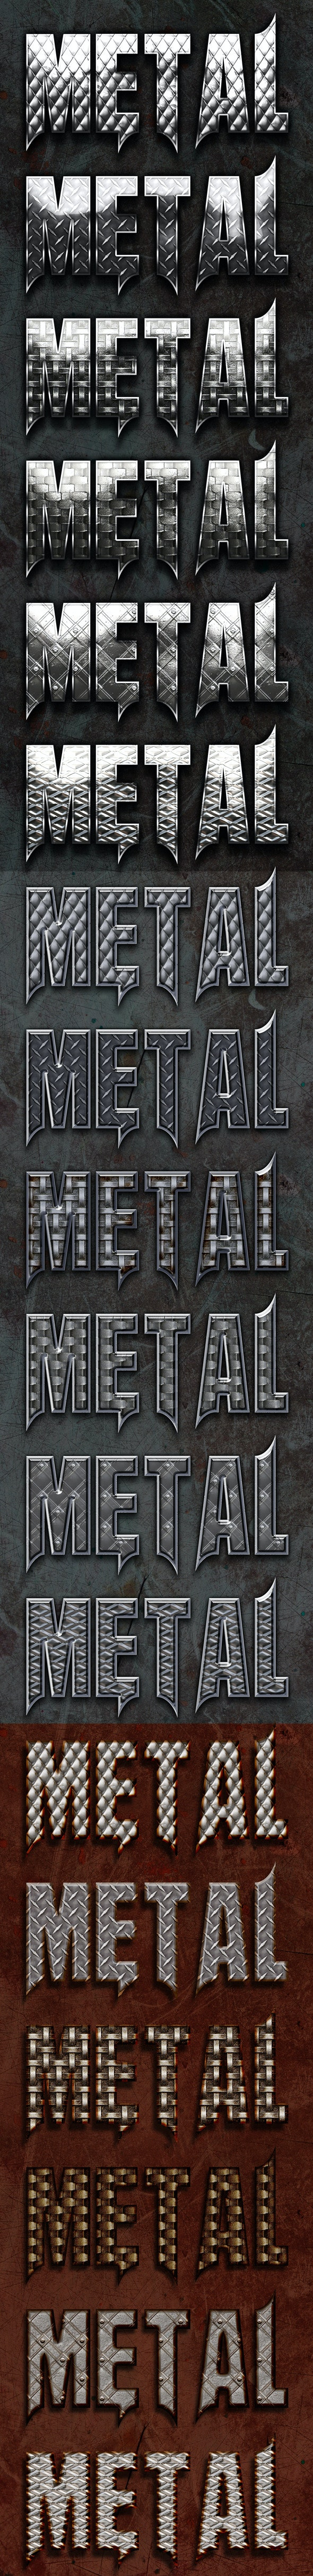 Bonded Metal Style - Text Effects Styles